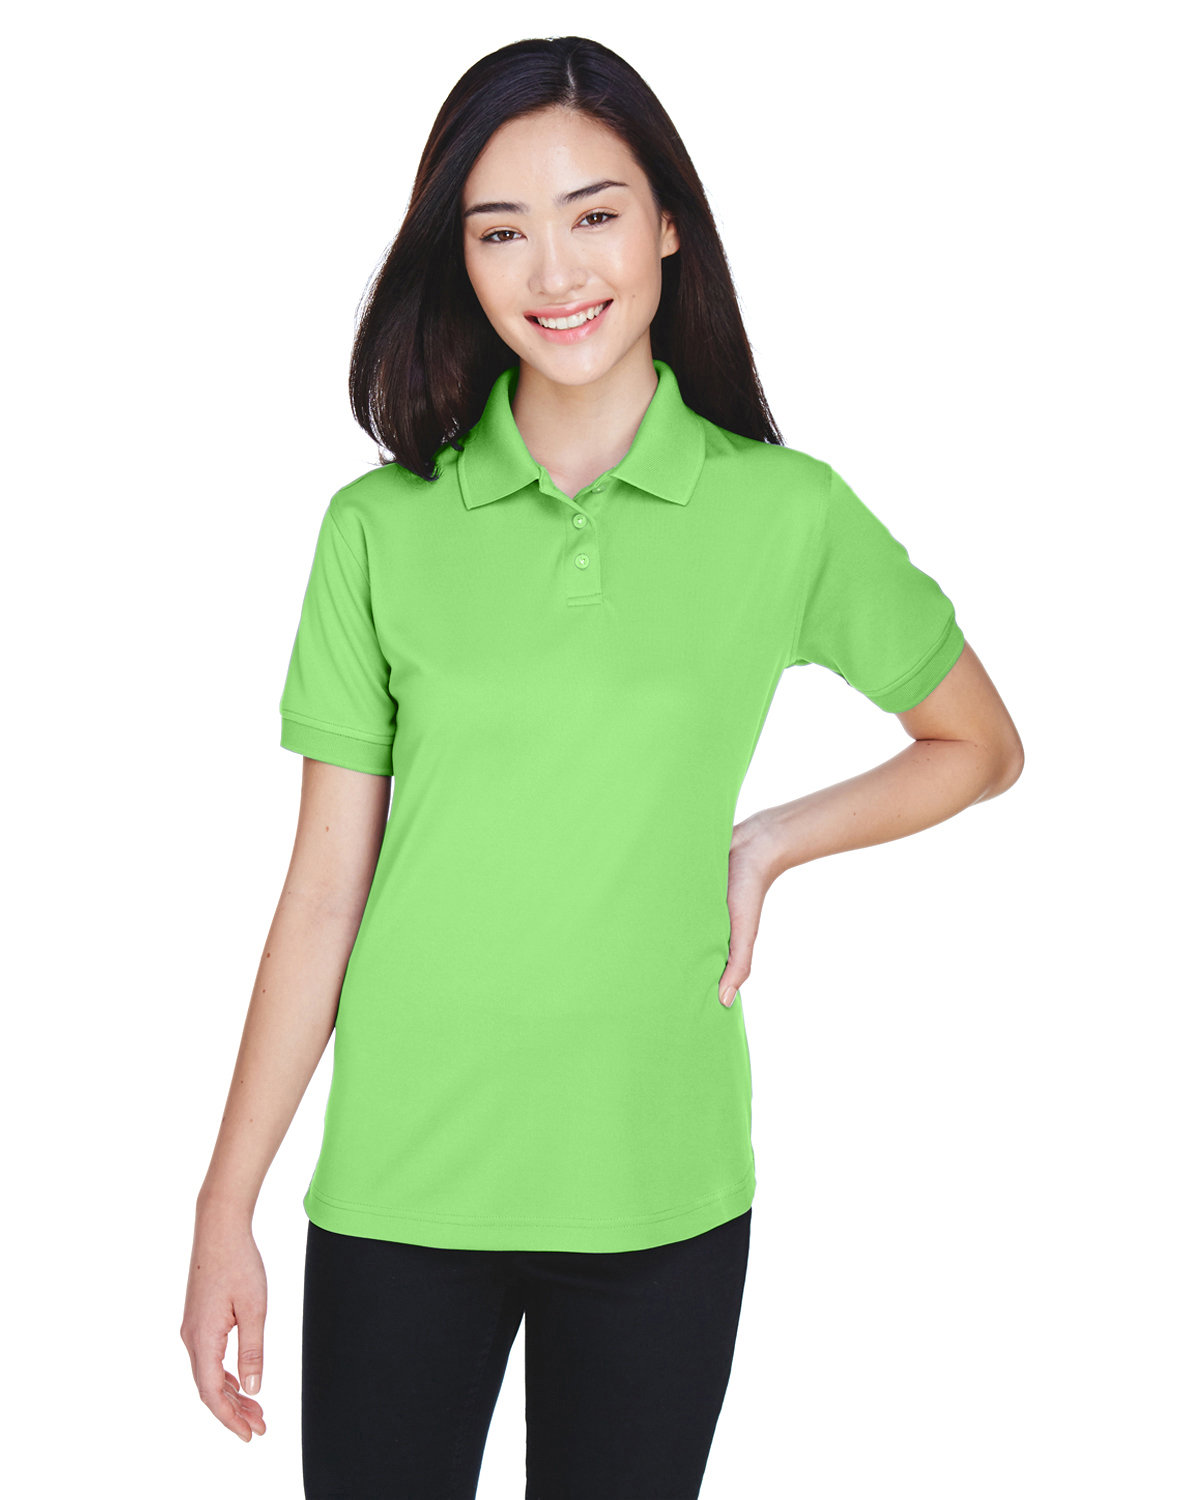 UltraClub Ladies' Platinum Performance Piqué Polo with TempControl Technology LIGHT GREEN